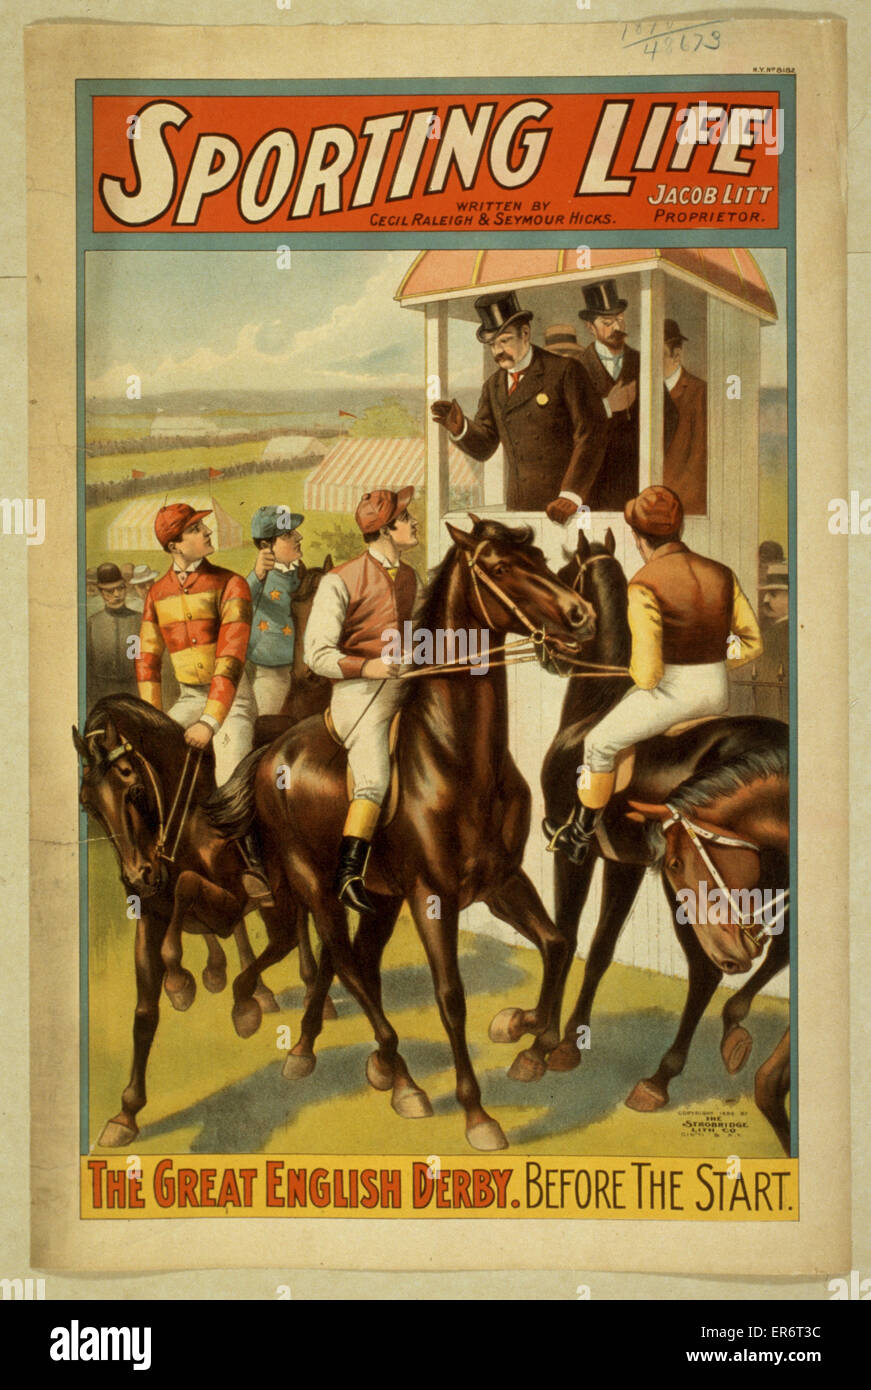 Sporting life written by Cecil Raleigh & Seymour Hicks. Date c1898. - Stock Image